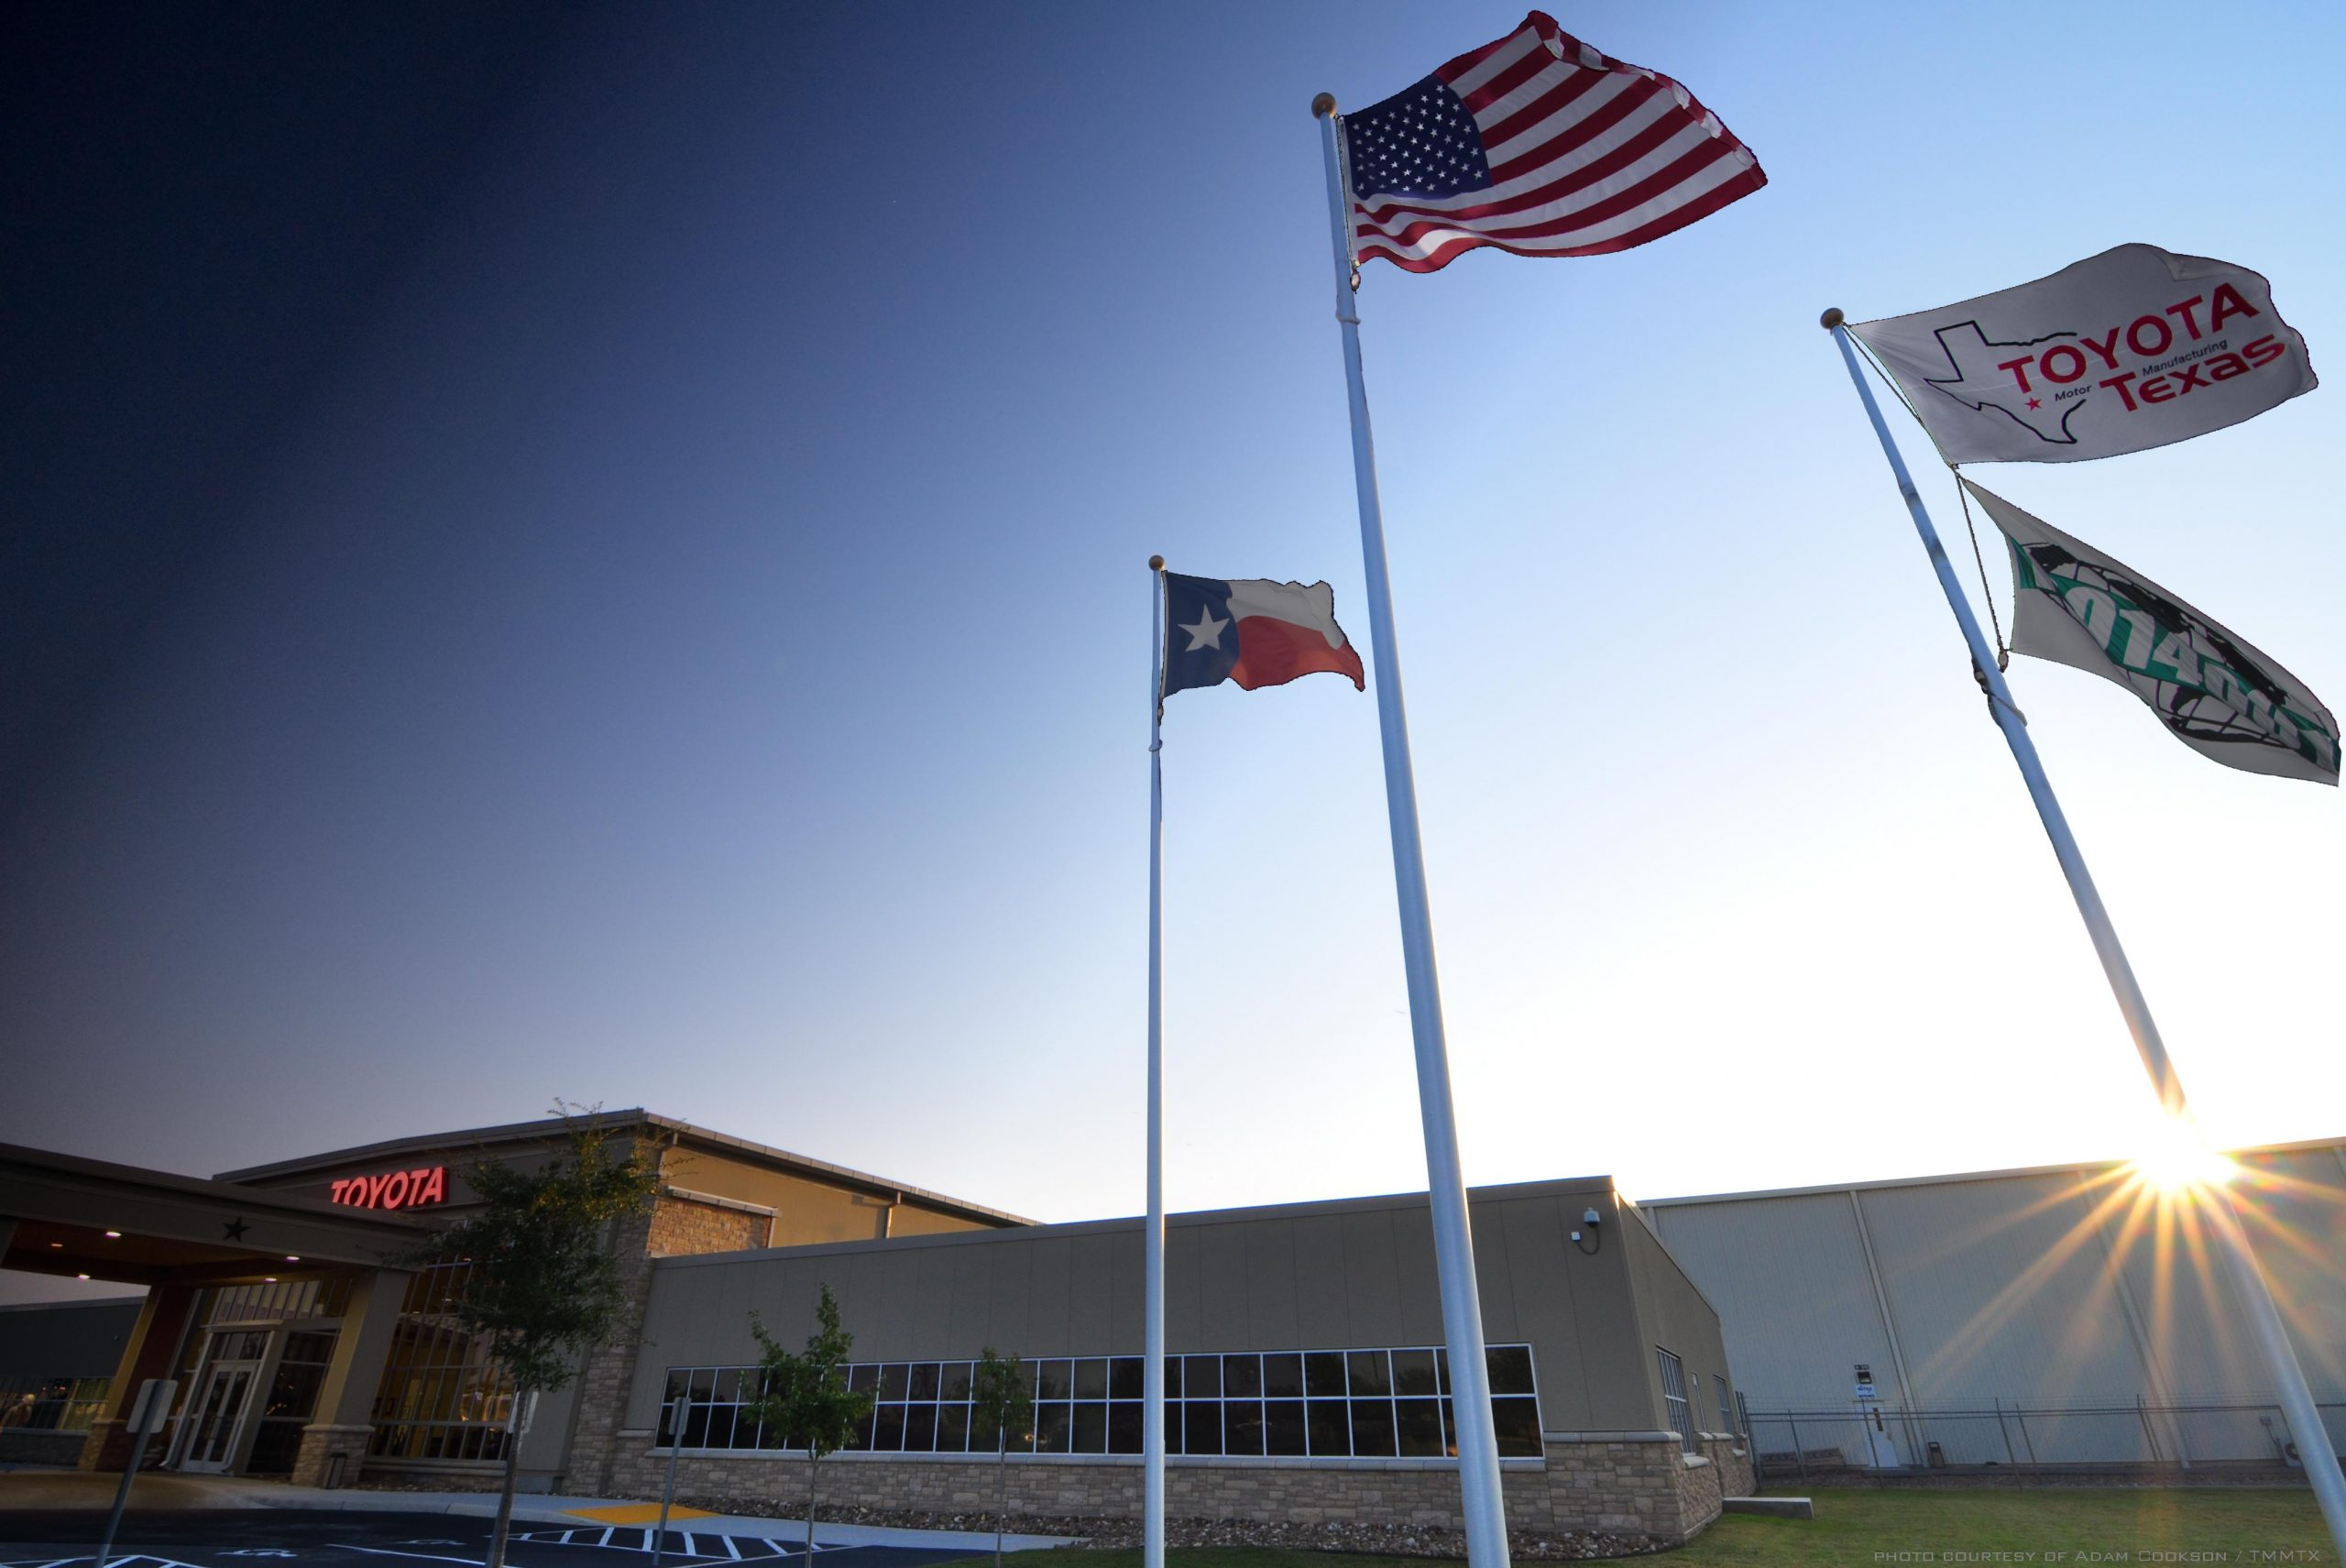 Toyota motor manufacturing plant at dawn. Photo courtesy of Toyota Texas.